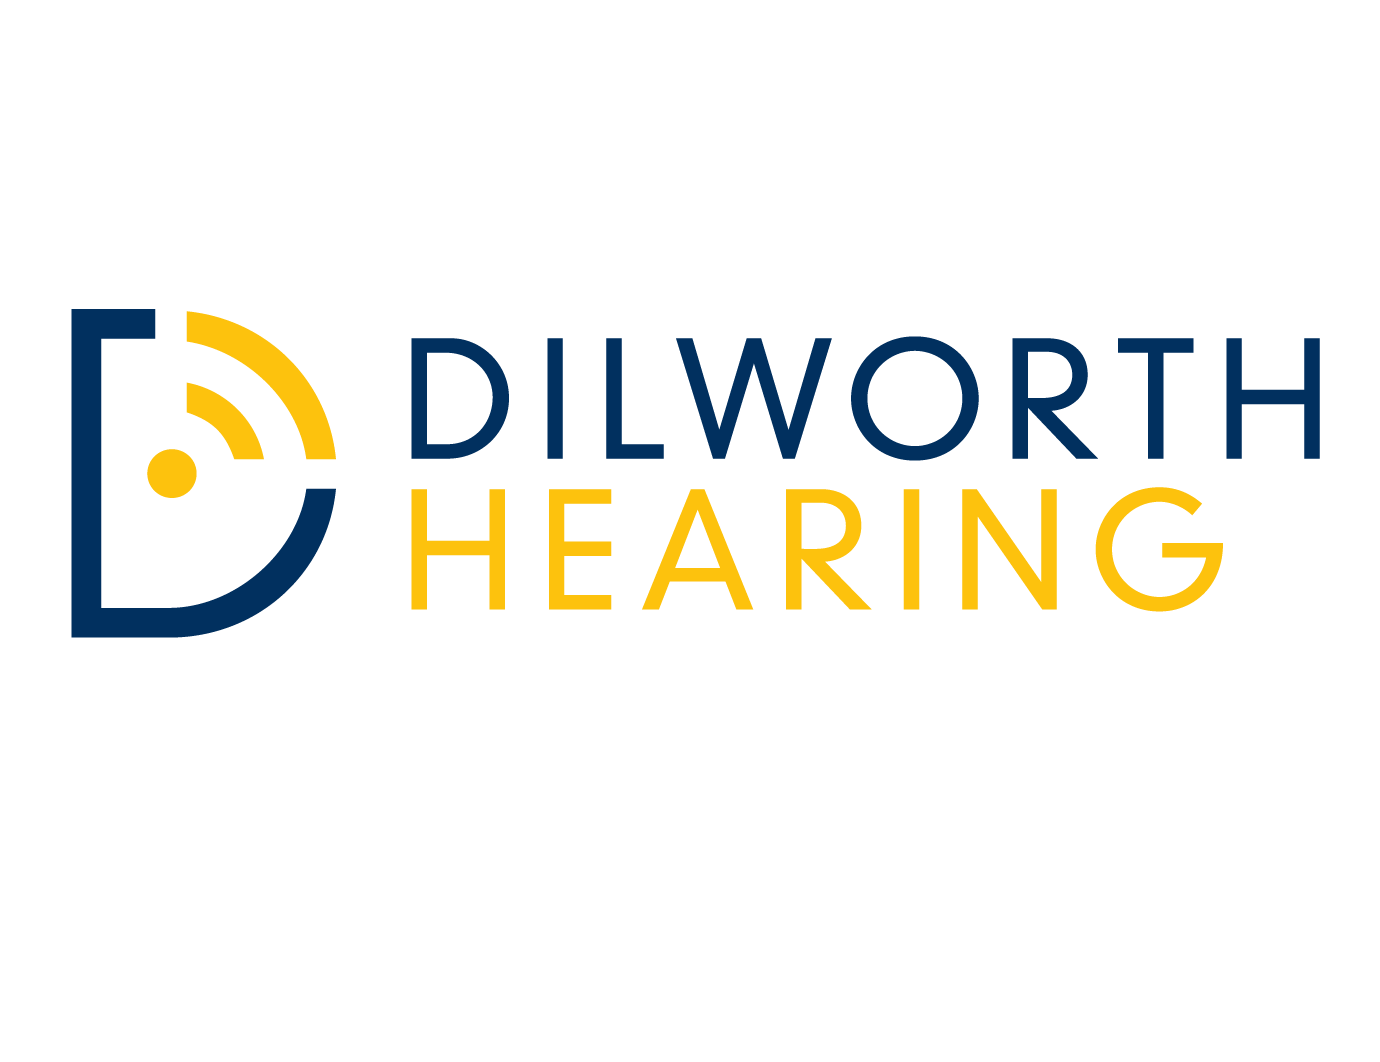 Dilworth Hearing